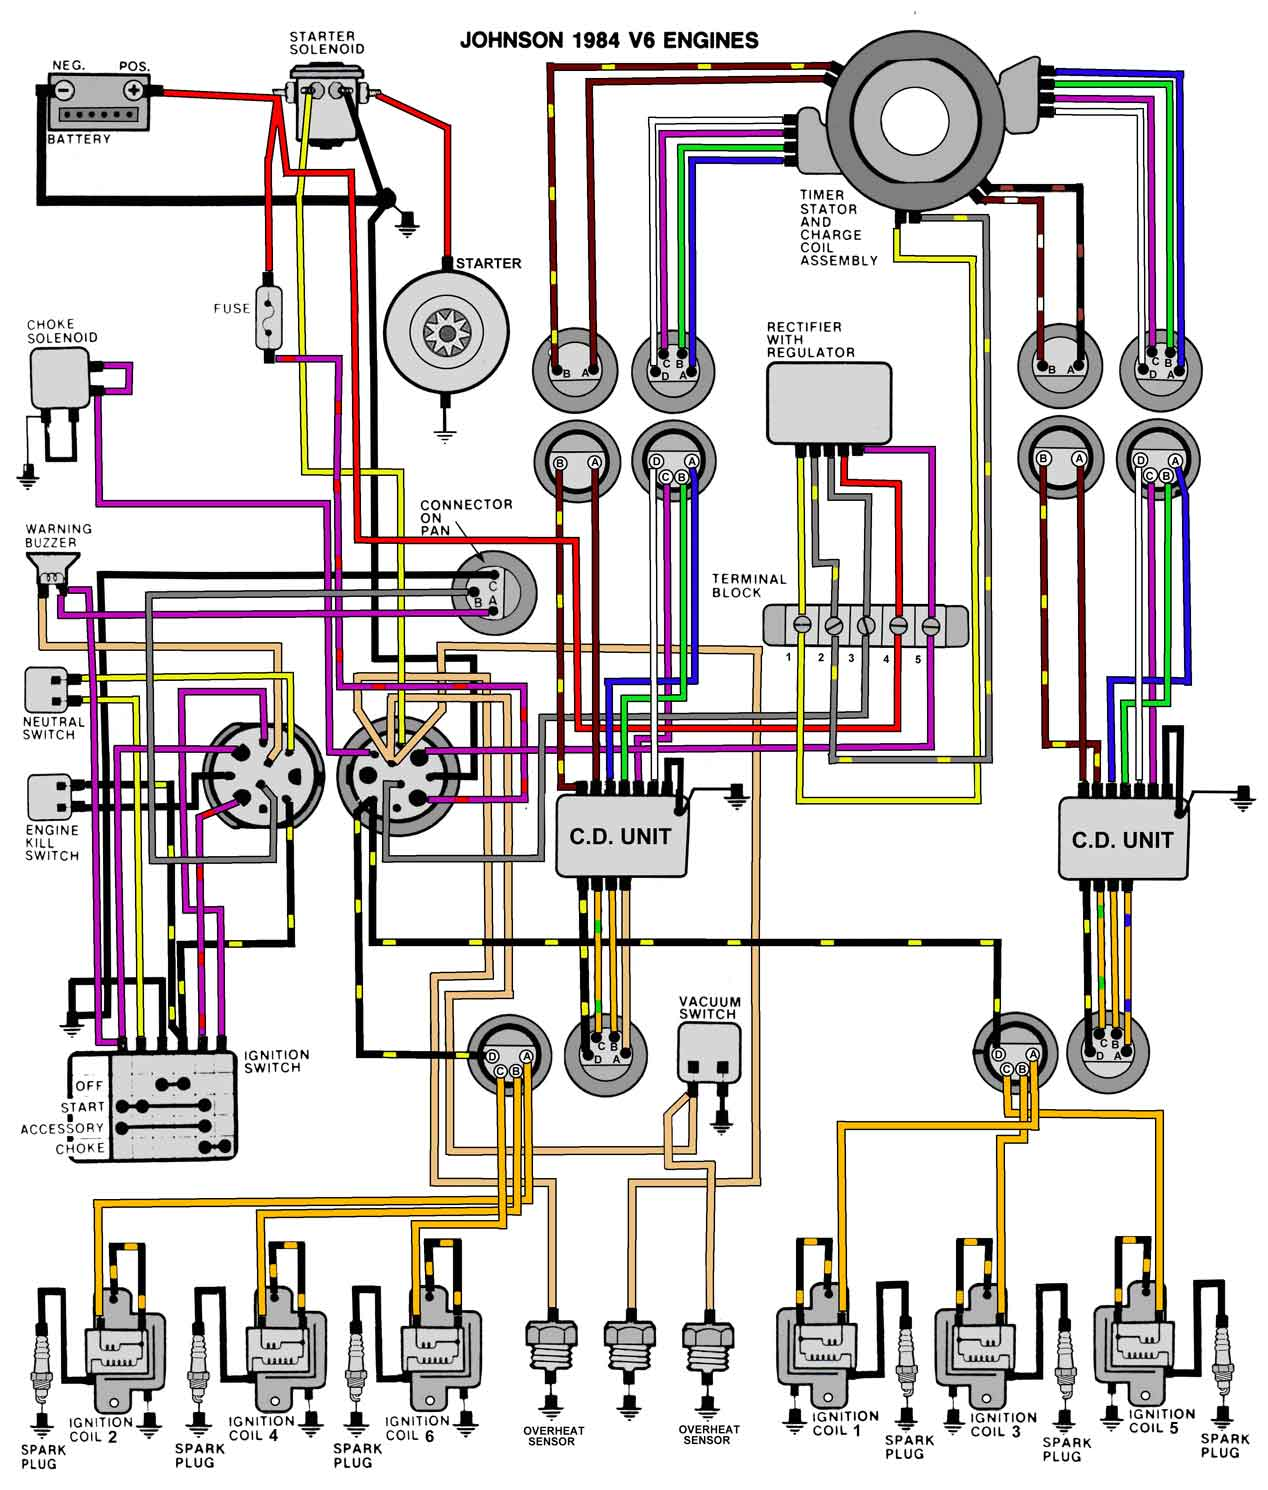 84_V6 mastertech marine evinrude johnson outboard wiring diagrams  at crackthecode.co